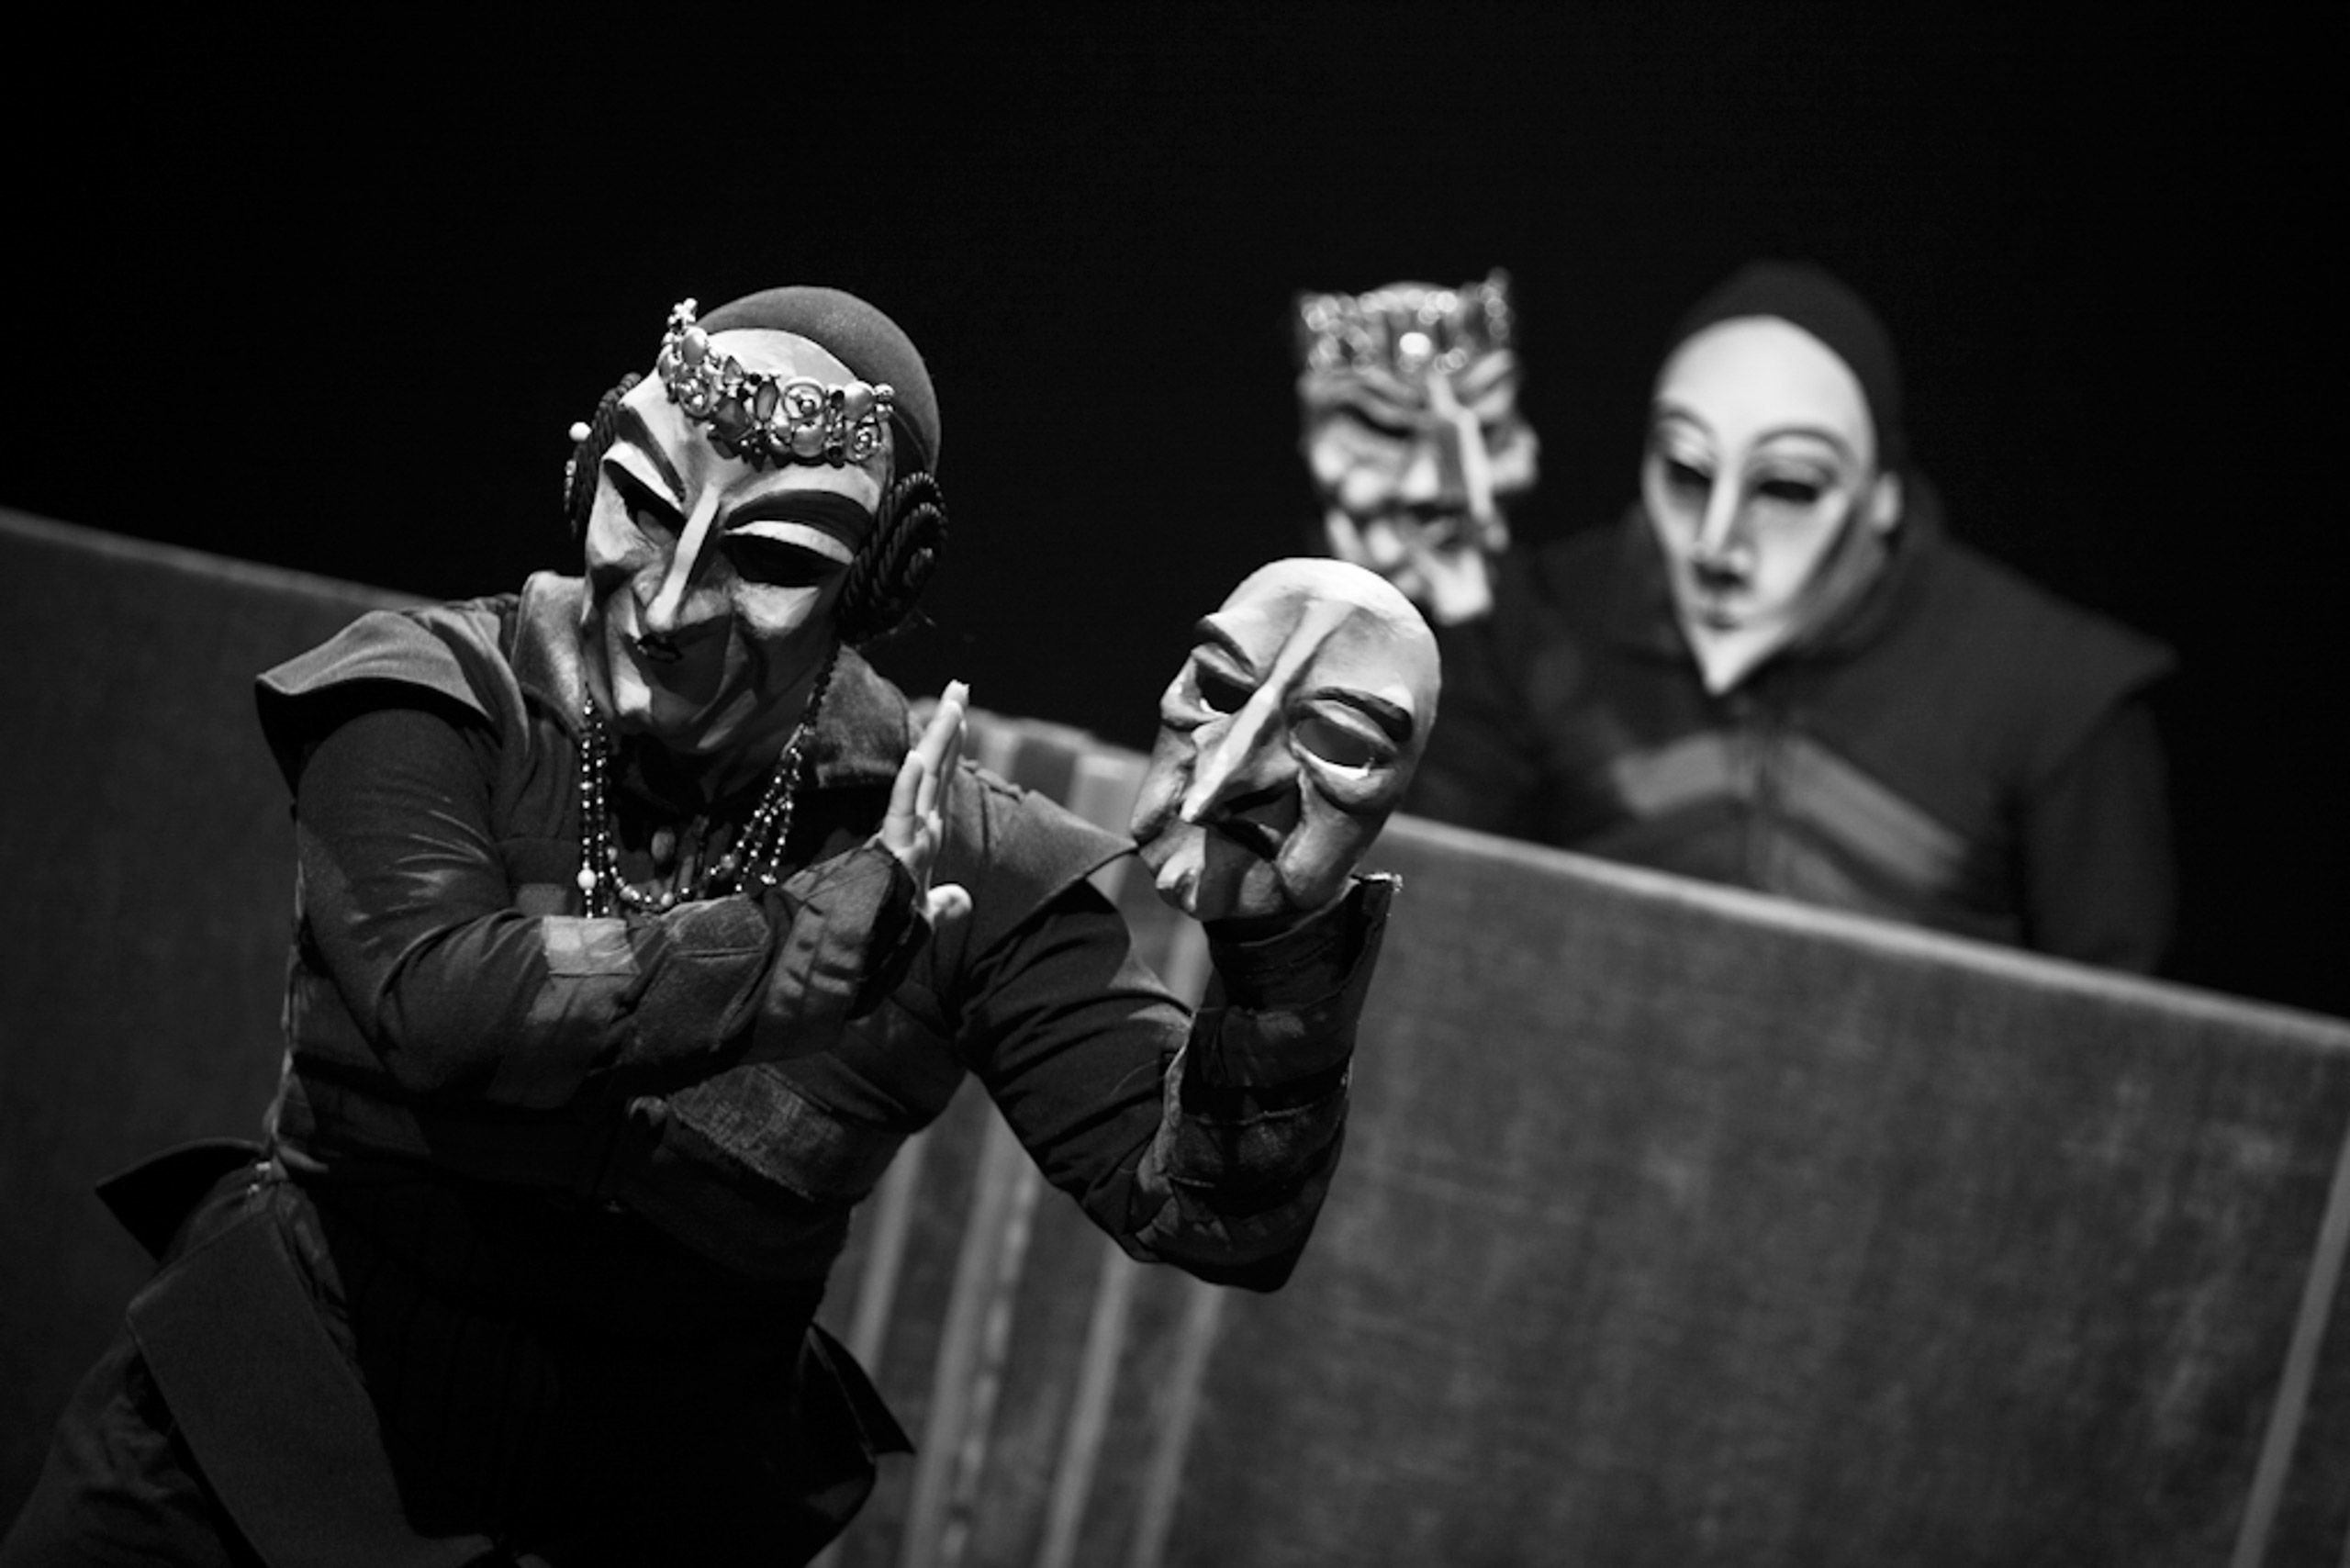 masks in hamlet The role of masquerade in shakespeare's plays  in the tragedy of king lear, masquerade is used not to disguise or address gender,  but the masks.